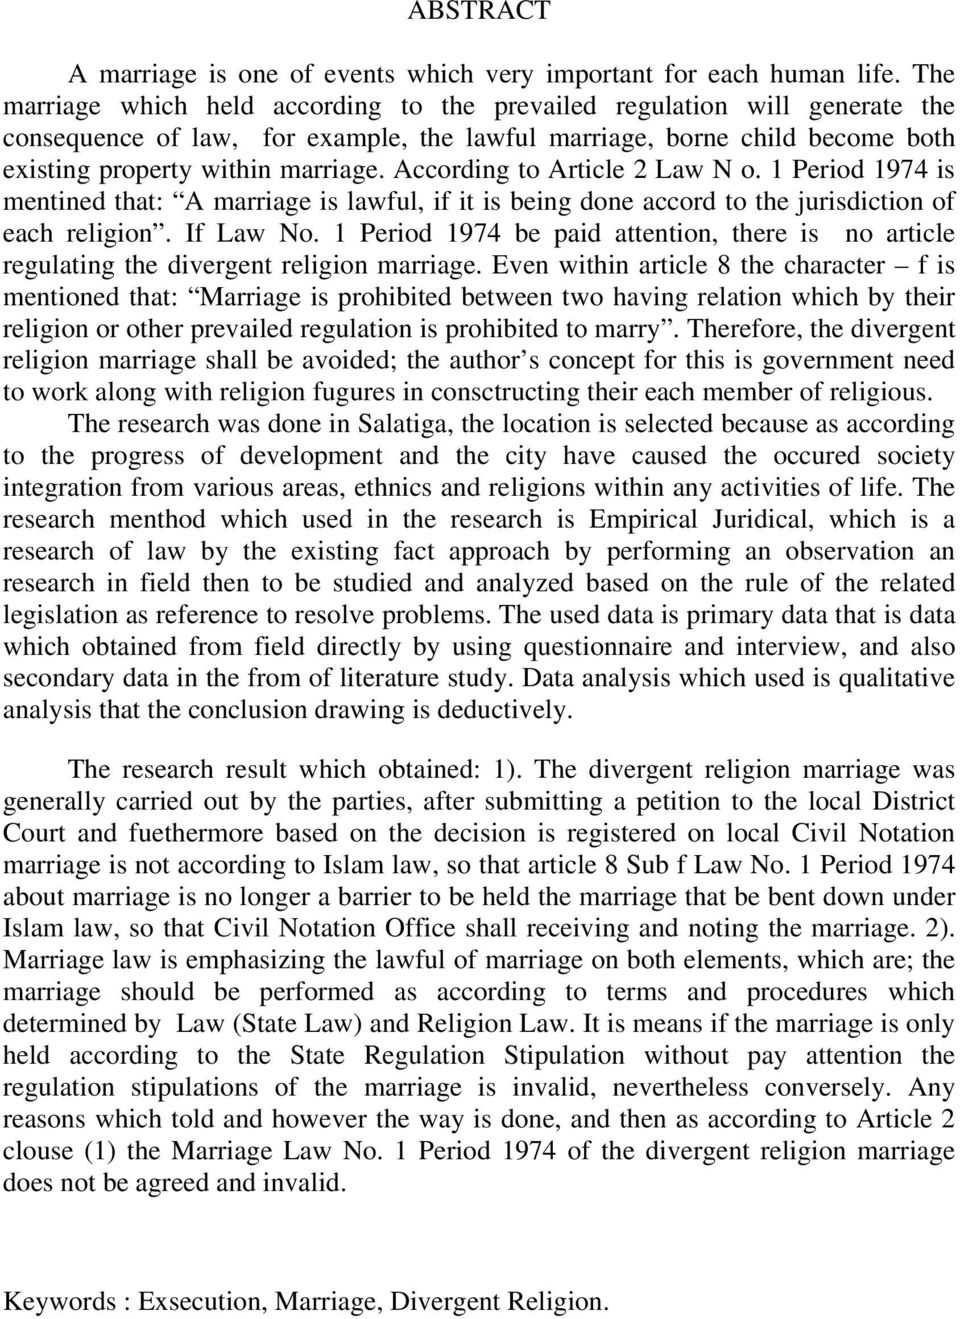 According to Article 2 Law N o. 1 Period 1974 is mentined that: A marriage is lawful, if it is being done accord to the jurisdiction of each religion. If Law No.